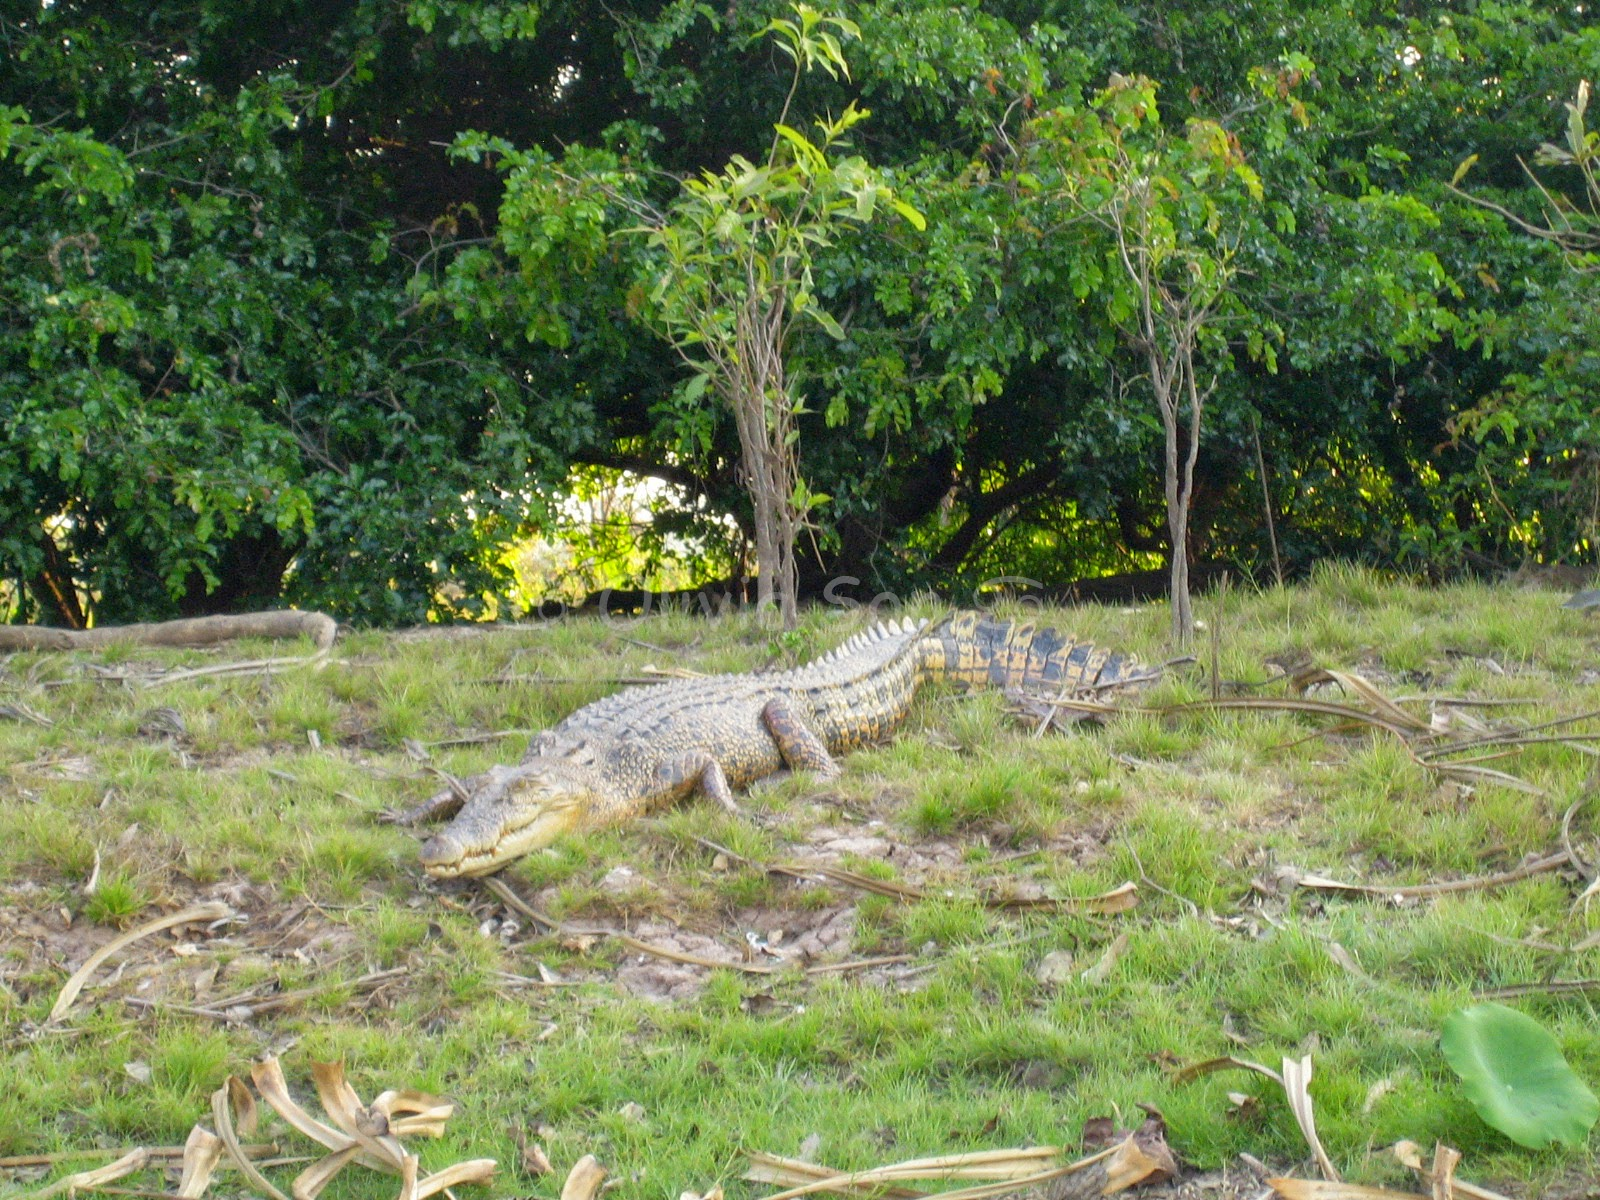 Crocodile, Kakadu National Park, Northern Territory, Australie